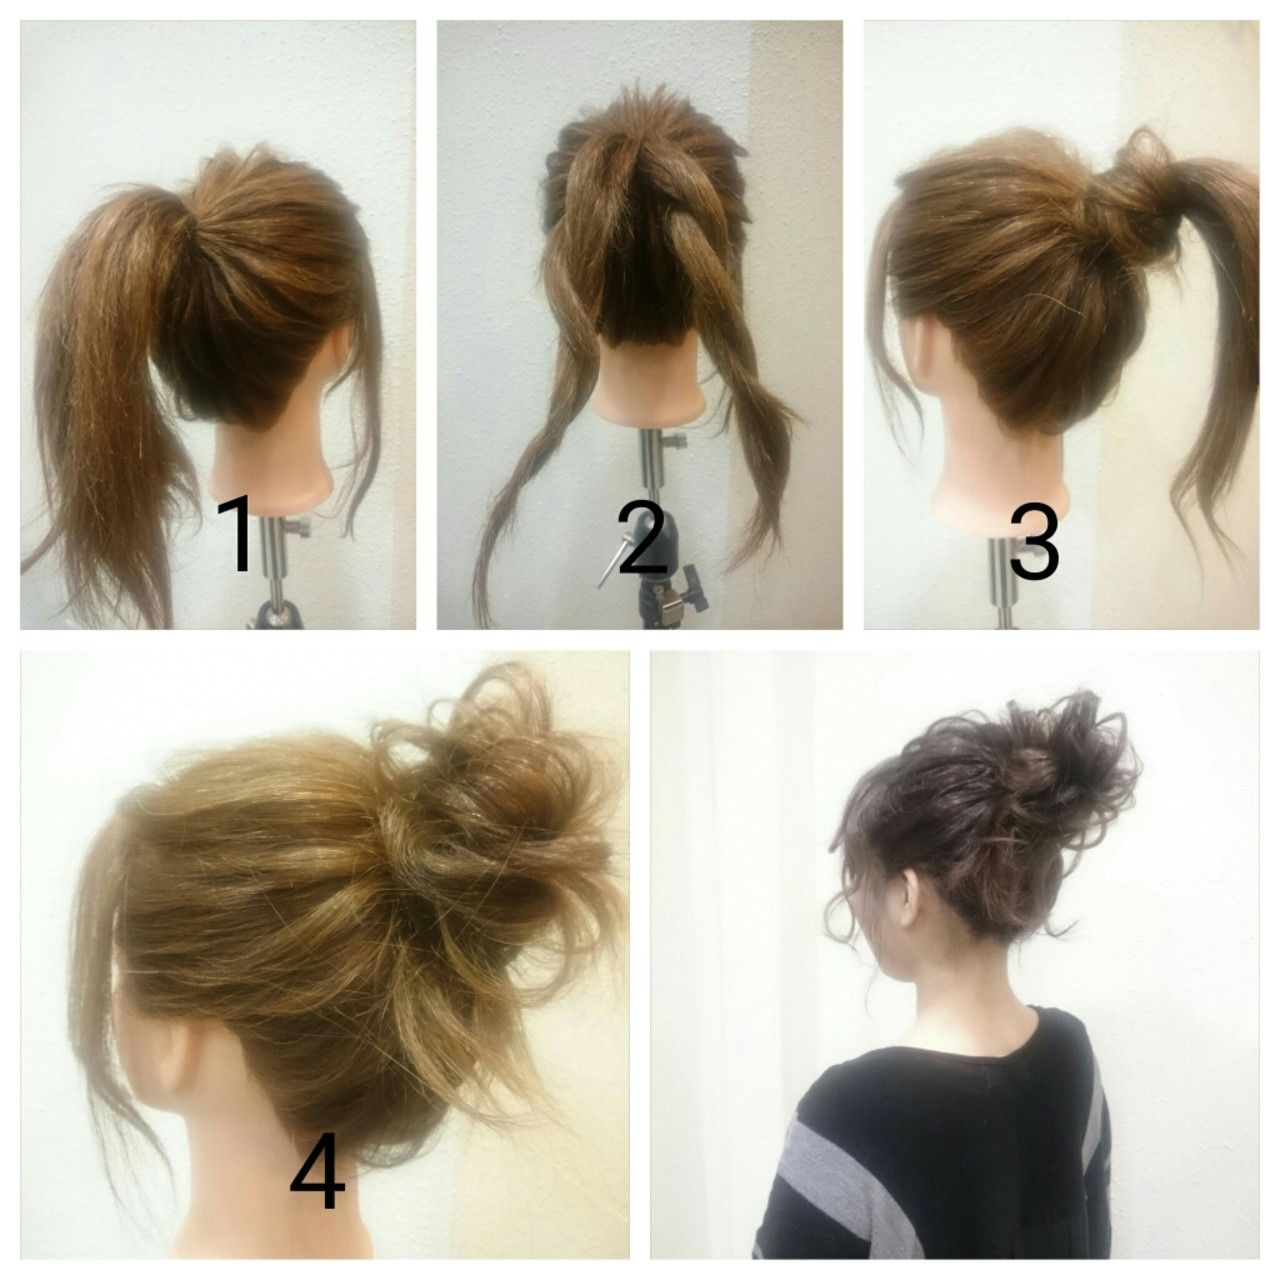 Messy bun beauty pinterest messy buns hair style and makeup